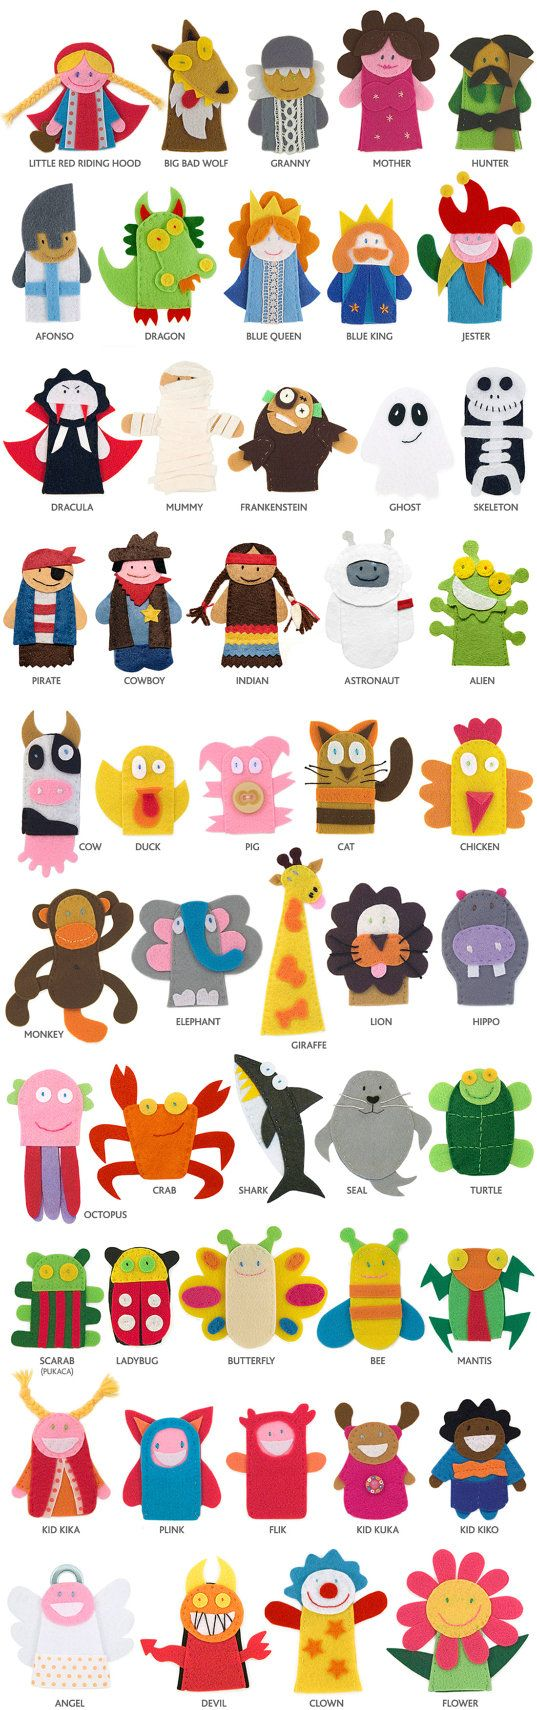 5 Finger puppets - choose 5 finger puppets and the color of your bag